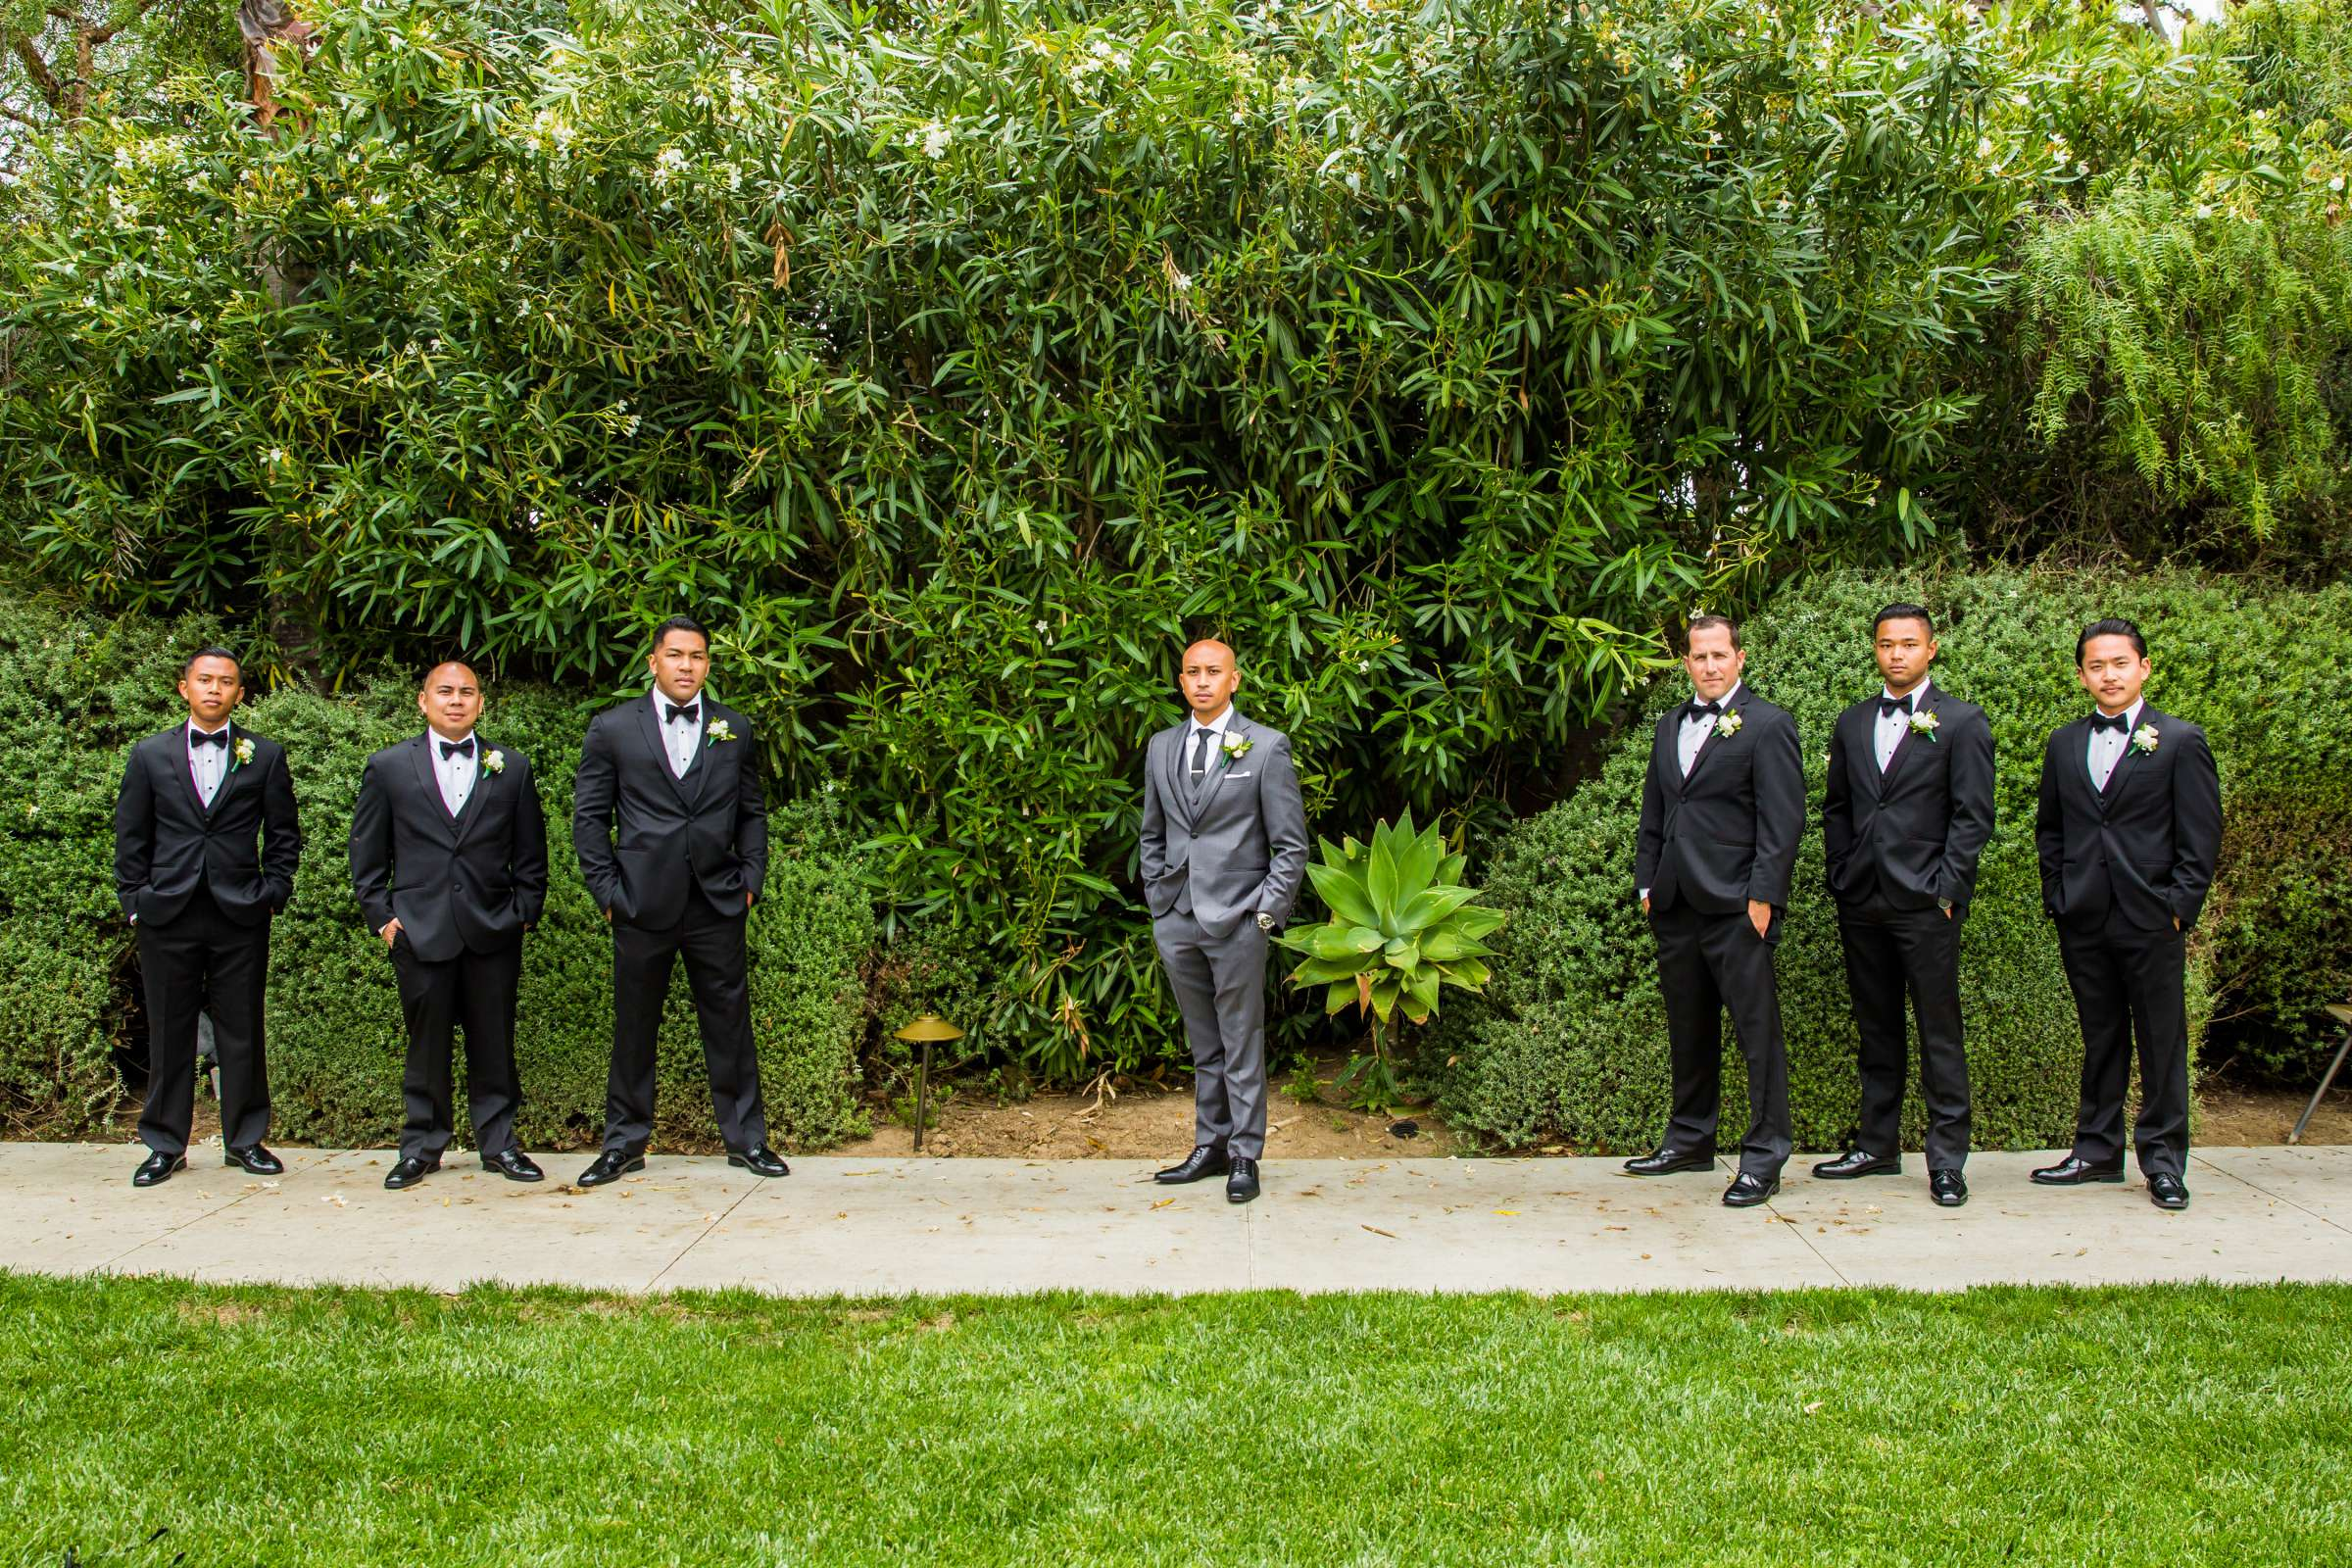 Scripps Seaside Forum Wedding coordinated by Lavish Weddings, Cindy and Justin Wedding Photo #381789 by True Photography